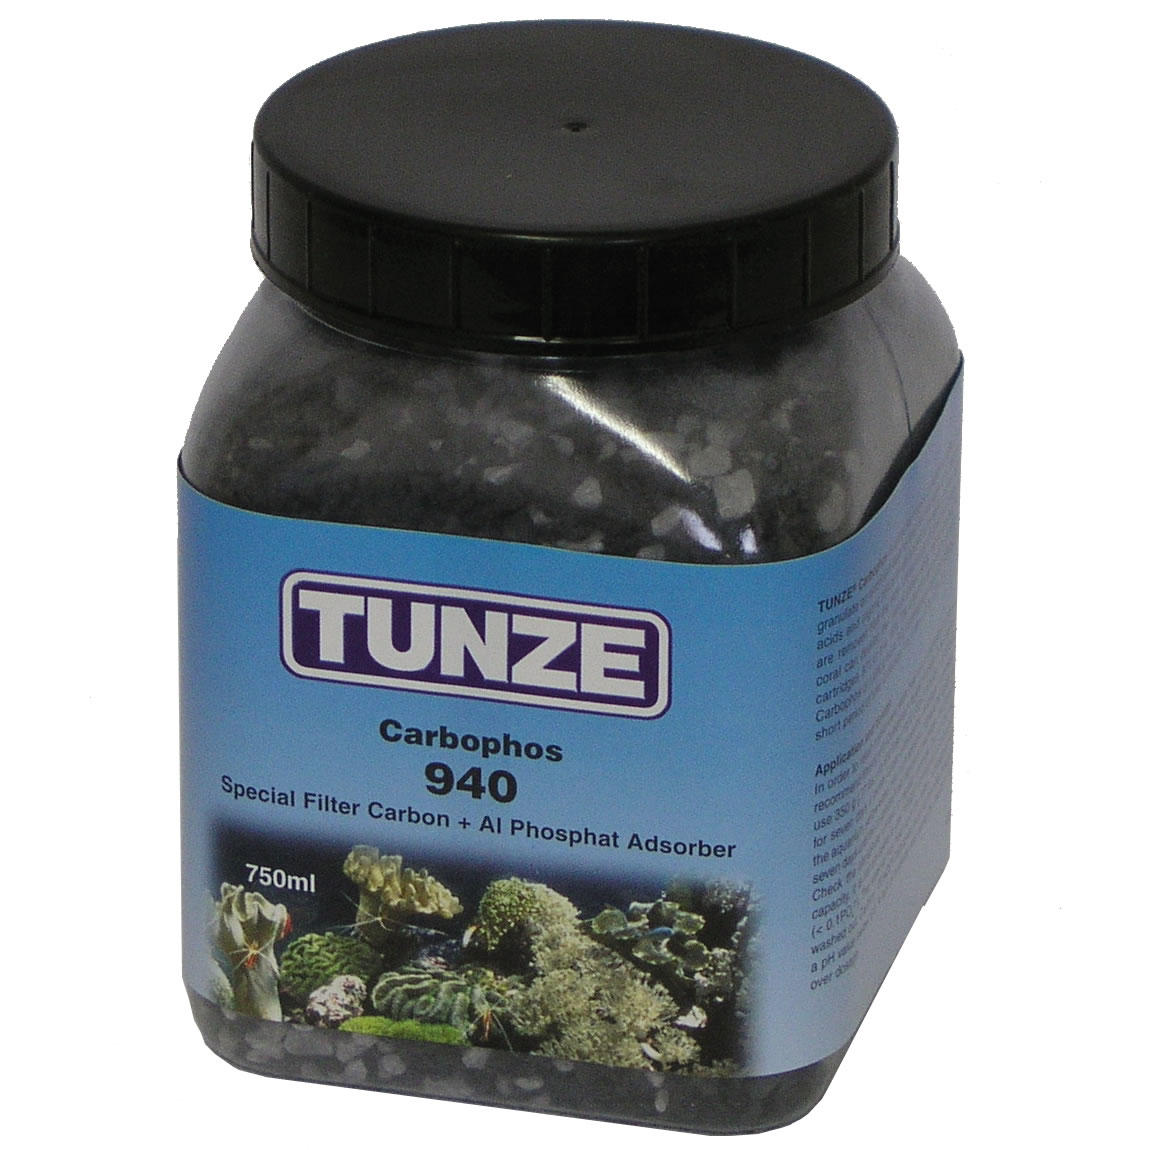 TUNZE Carbophos 750ml [0940.000]